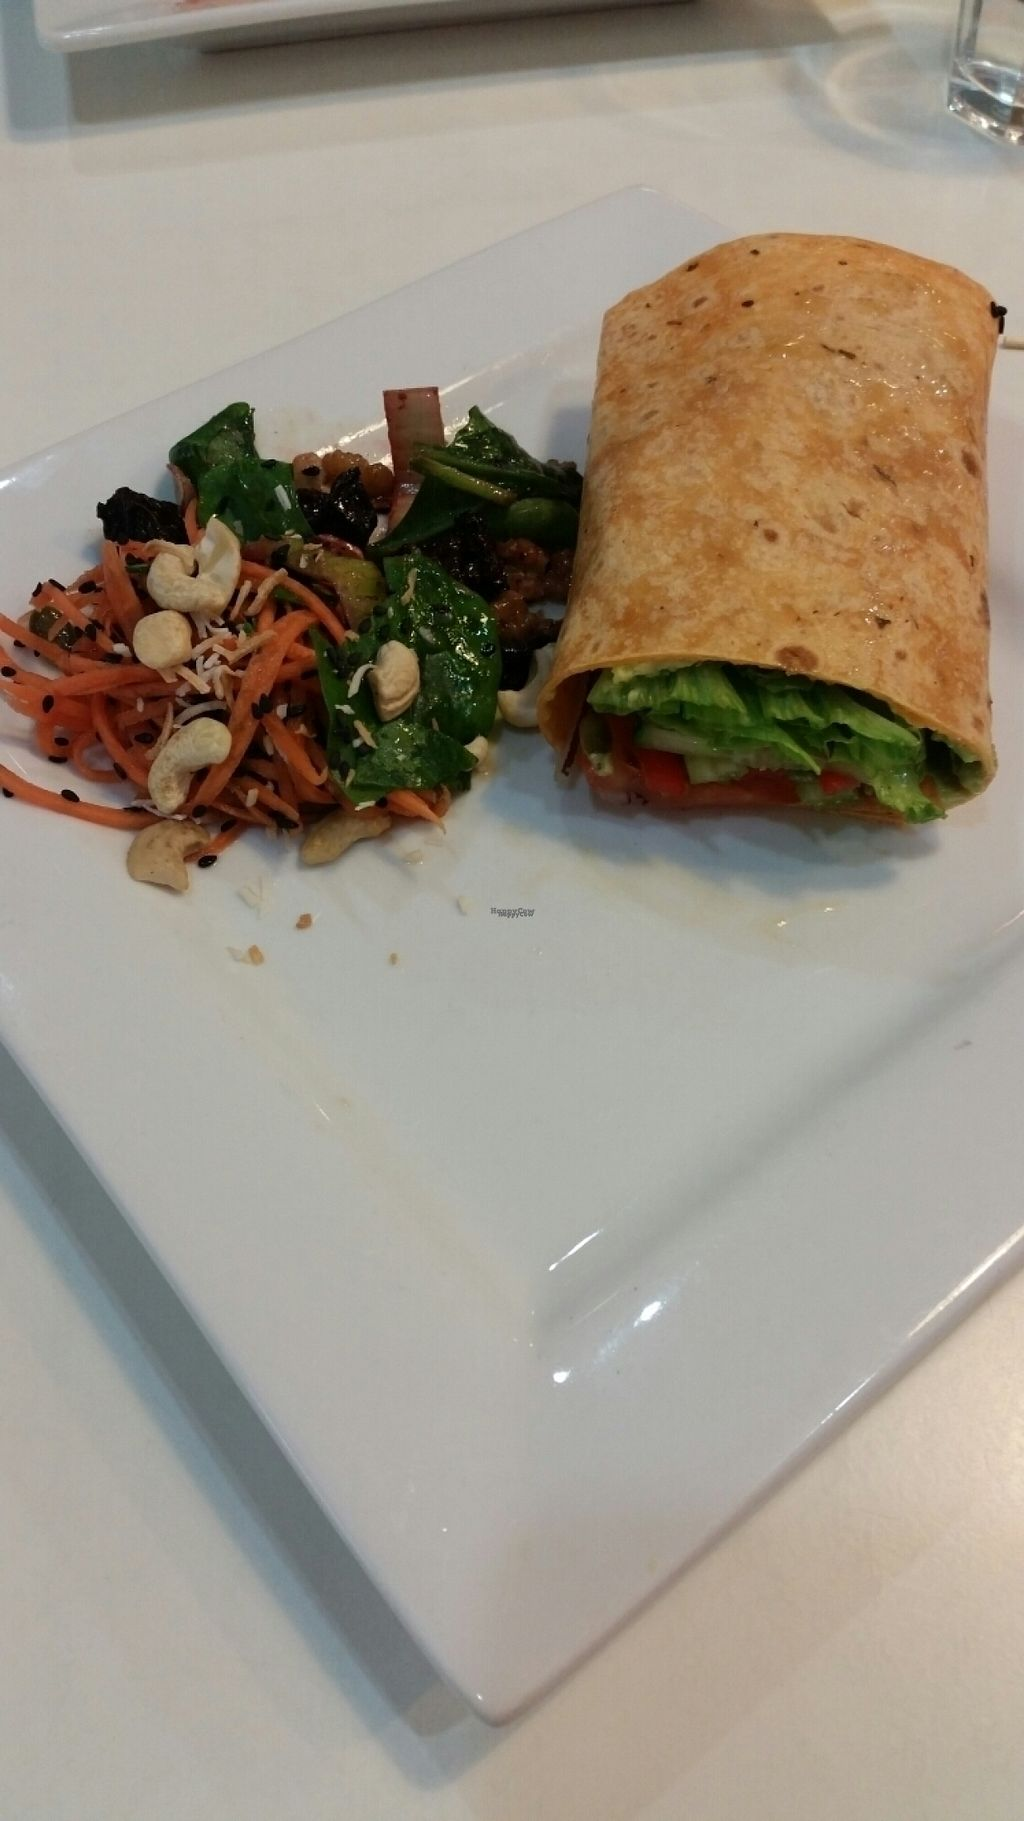 "Photo of Reality Bites Cafe  by <a href=""/members/profile/AndyTheVWDude"">AndyTheVWDude</a> <br/>Vegan wrap & mixed fresh salad <br/> November 4, 2016  - <a href='/contact/abuse/image/48232/186486'>Report</a>"